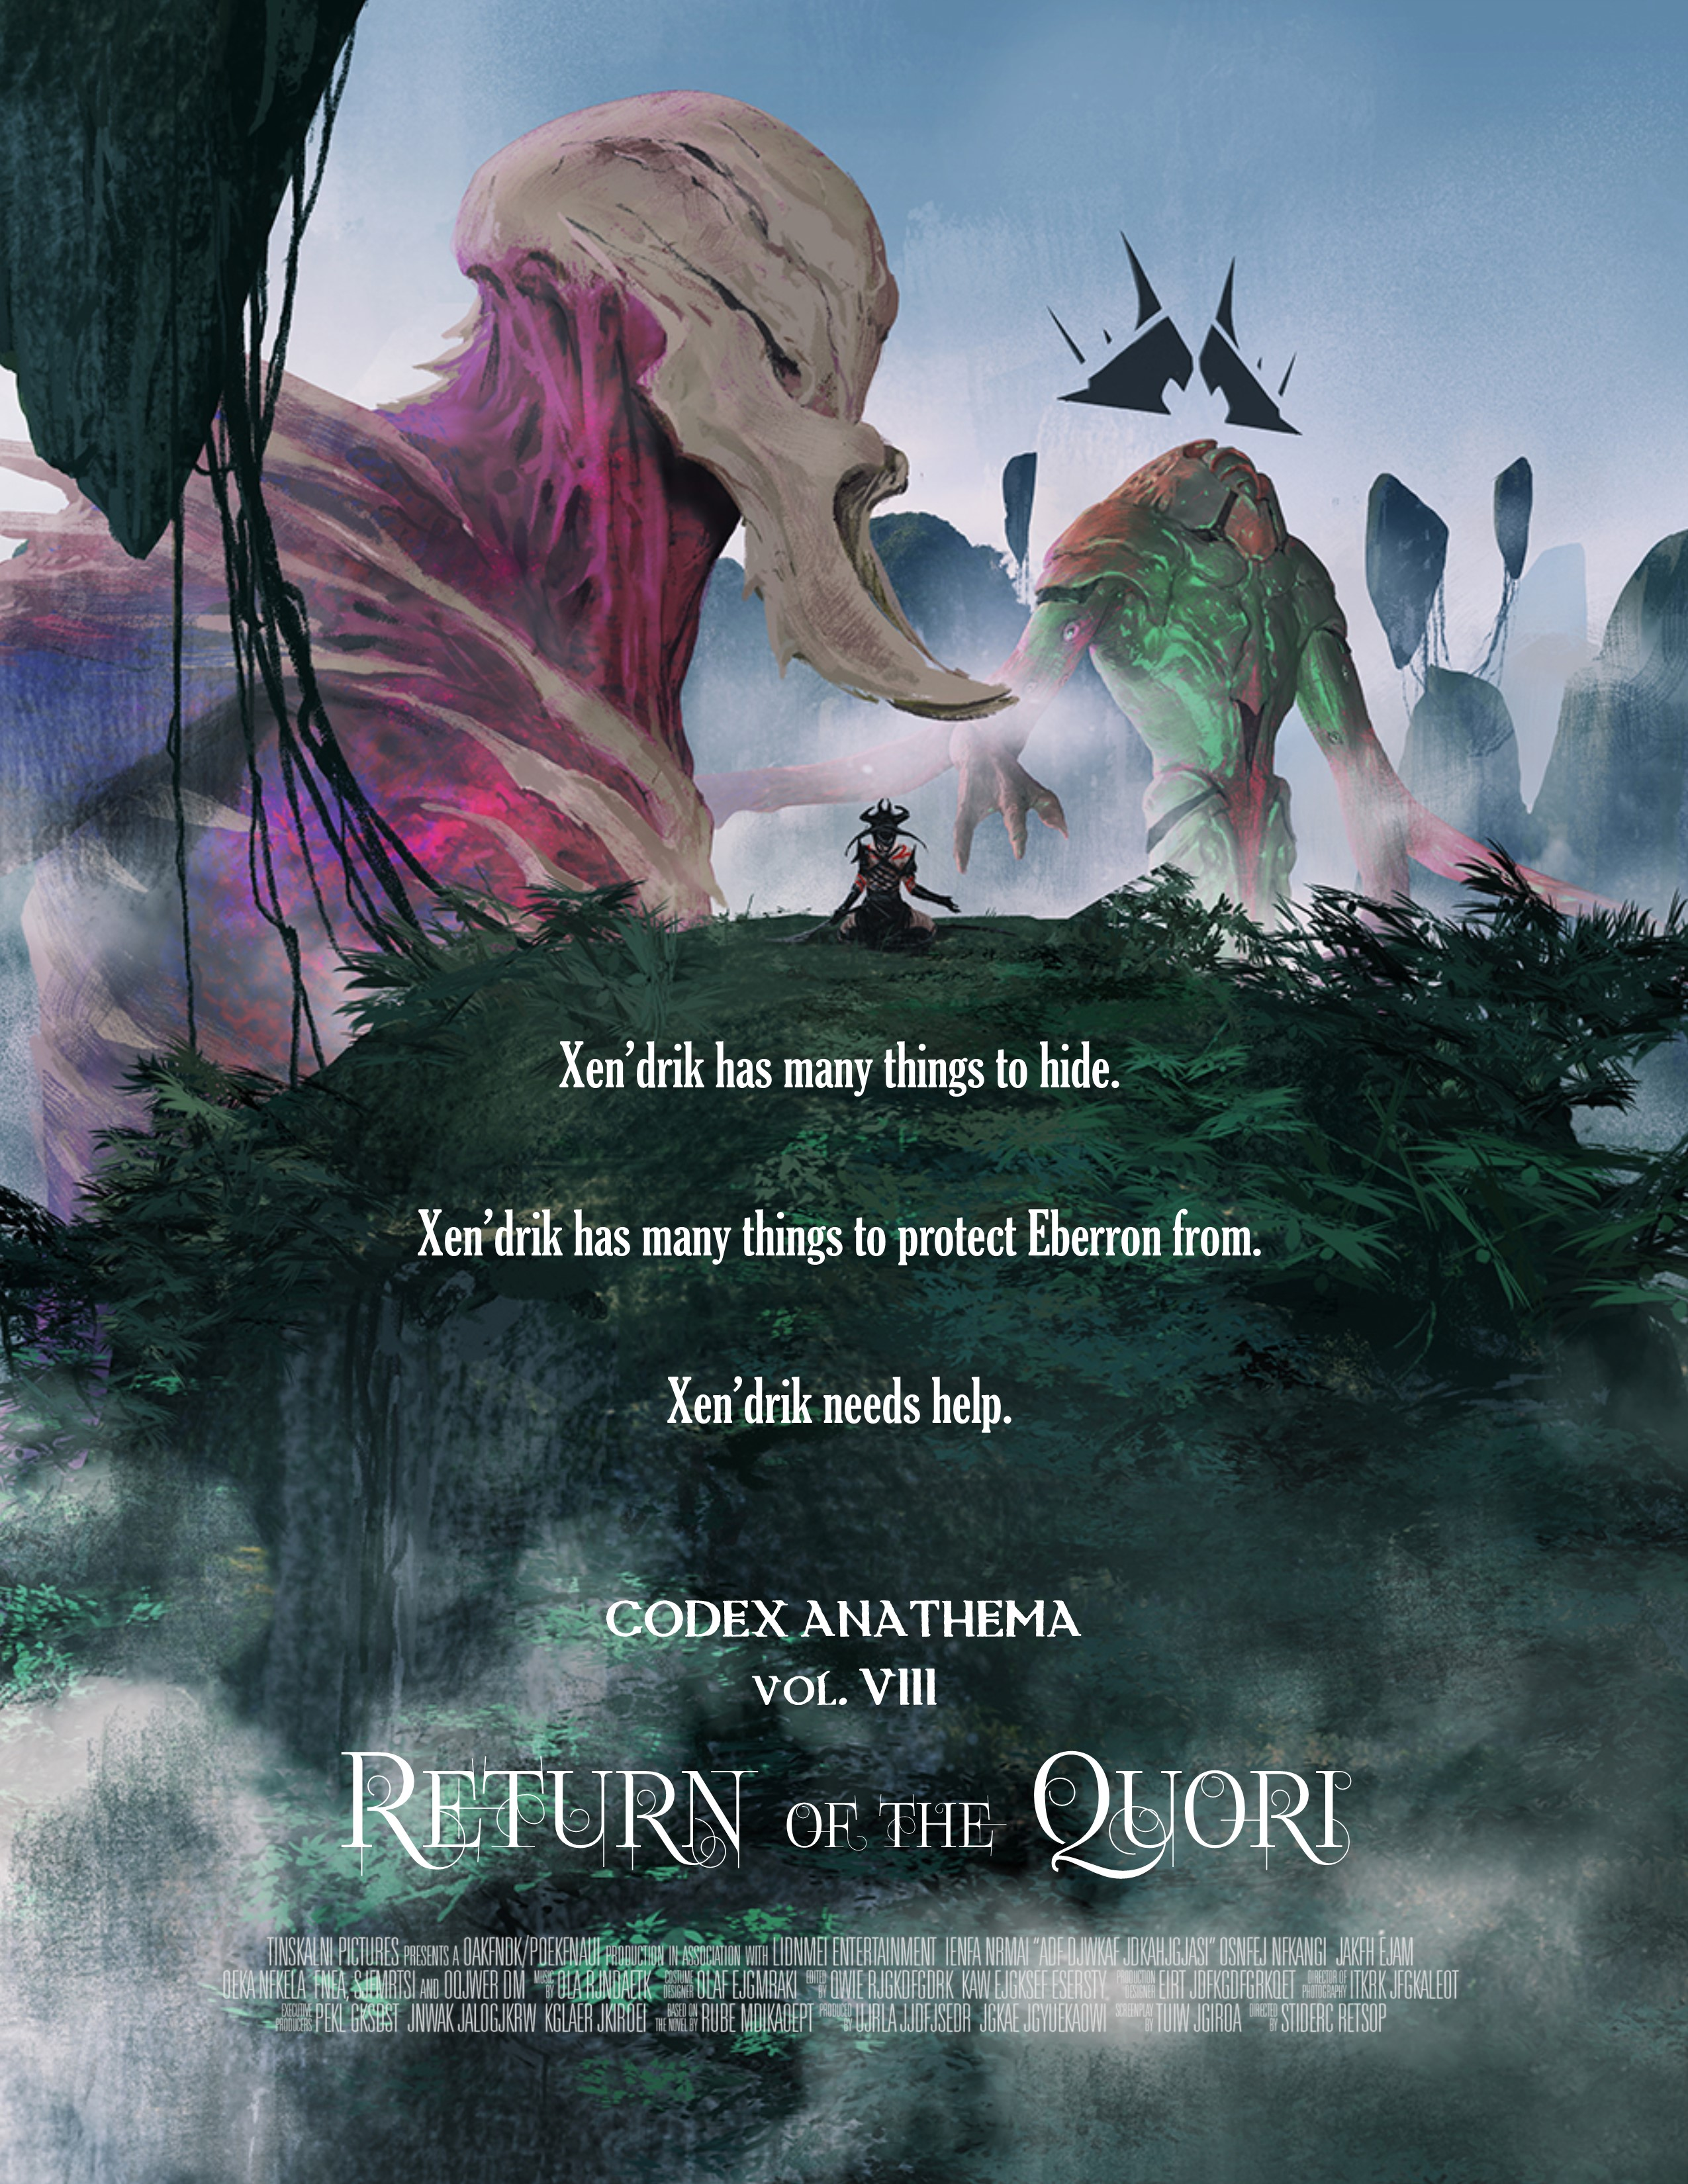 Posters_-_Codex_Anathema_VIII_-_Return_of_the_Quori.jpg